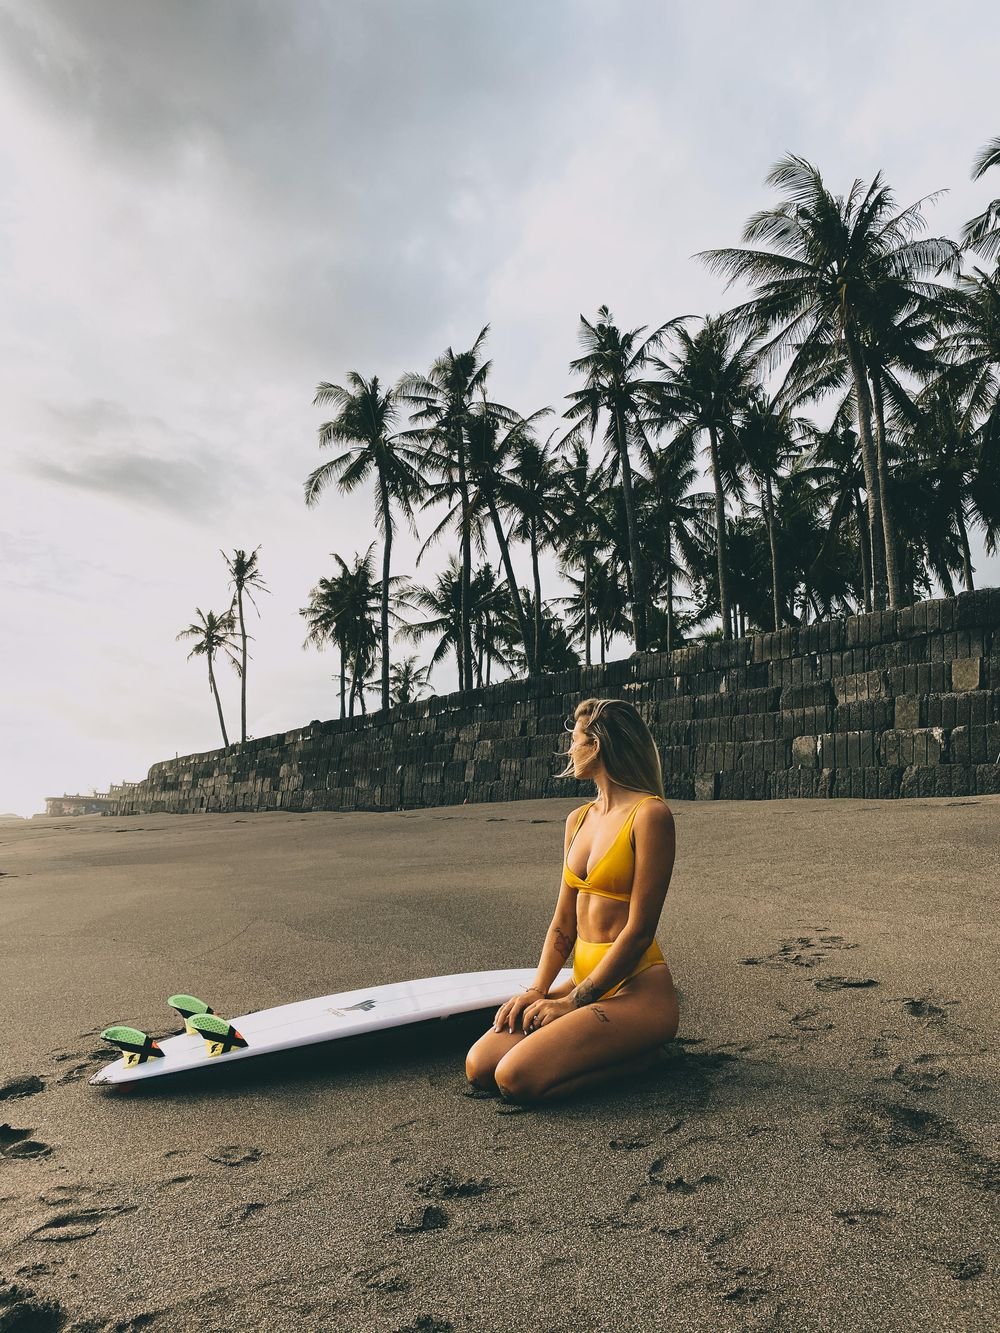 iPhone Portrait Shoot with Kelsey in Bali - image 3 - student project